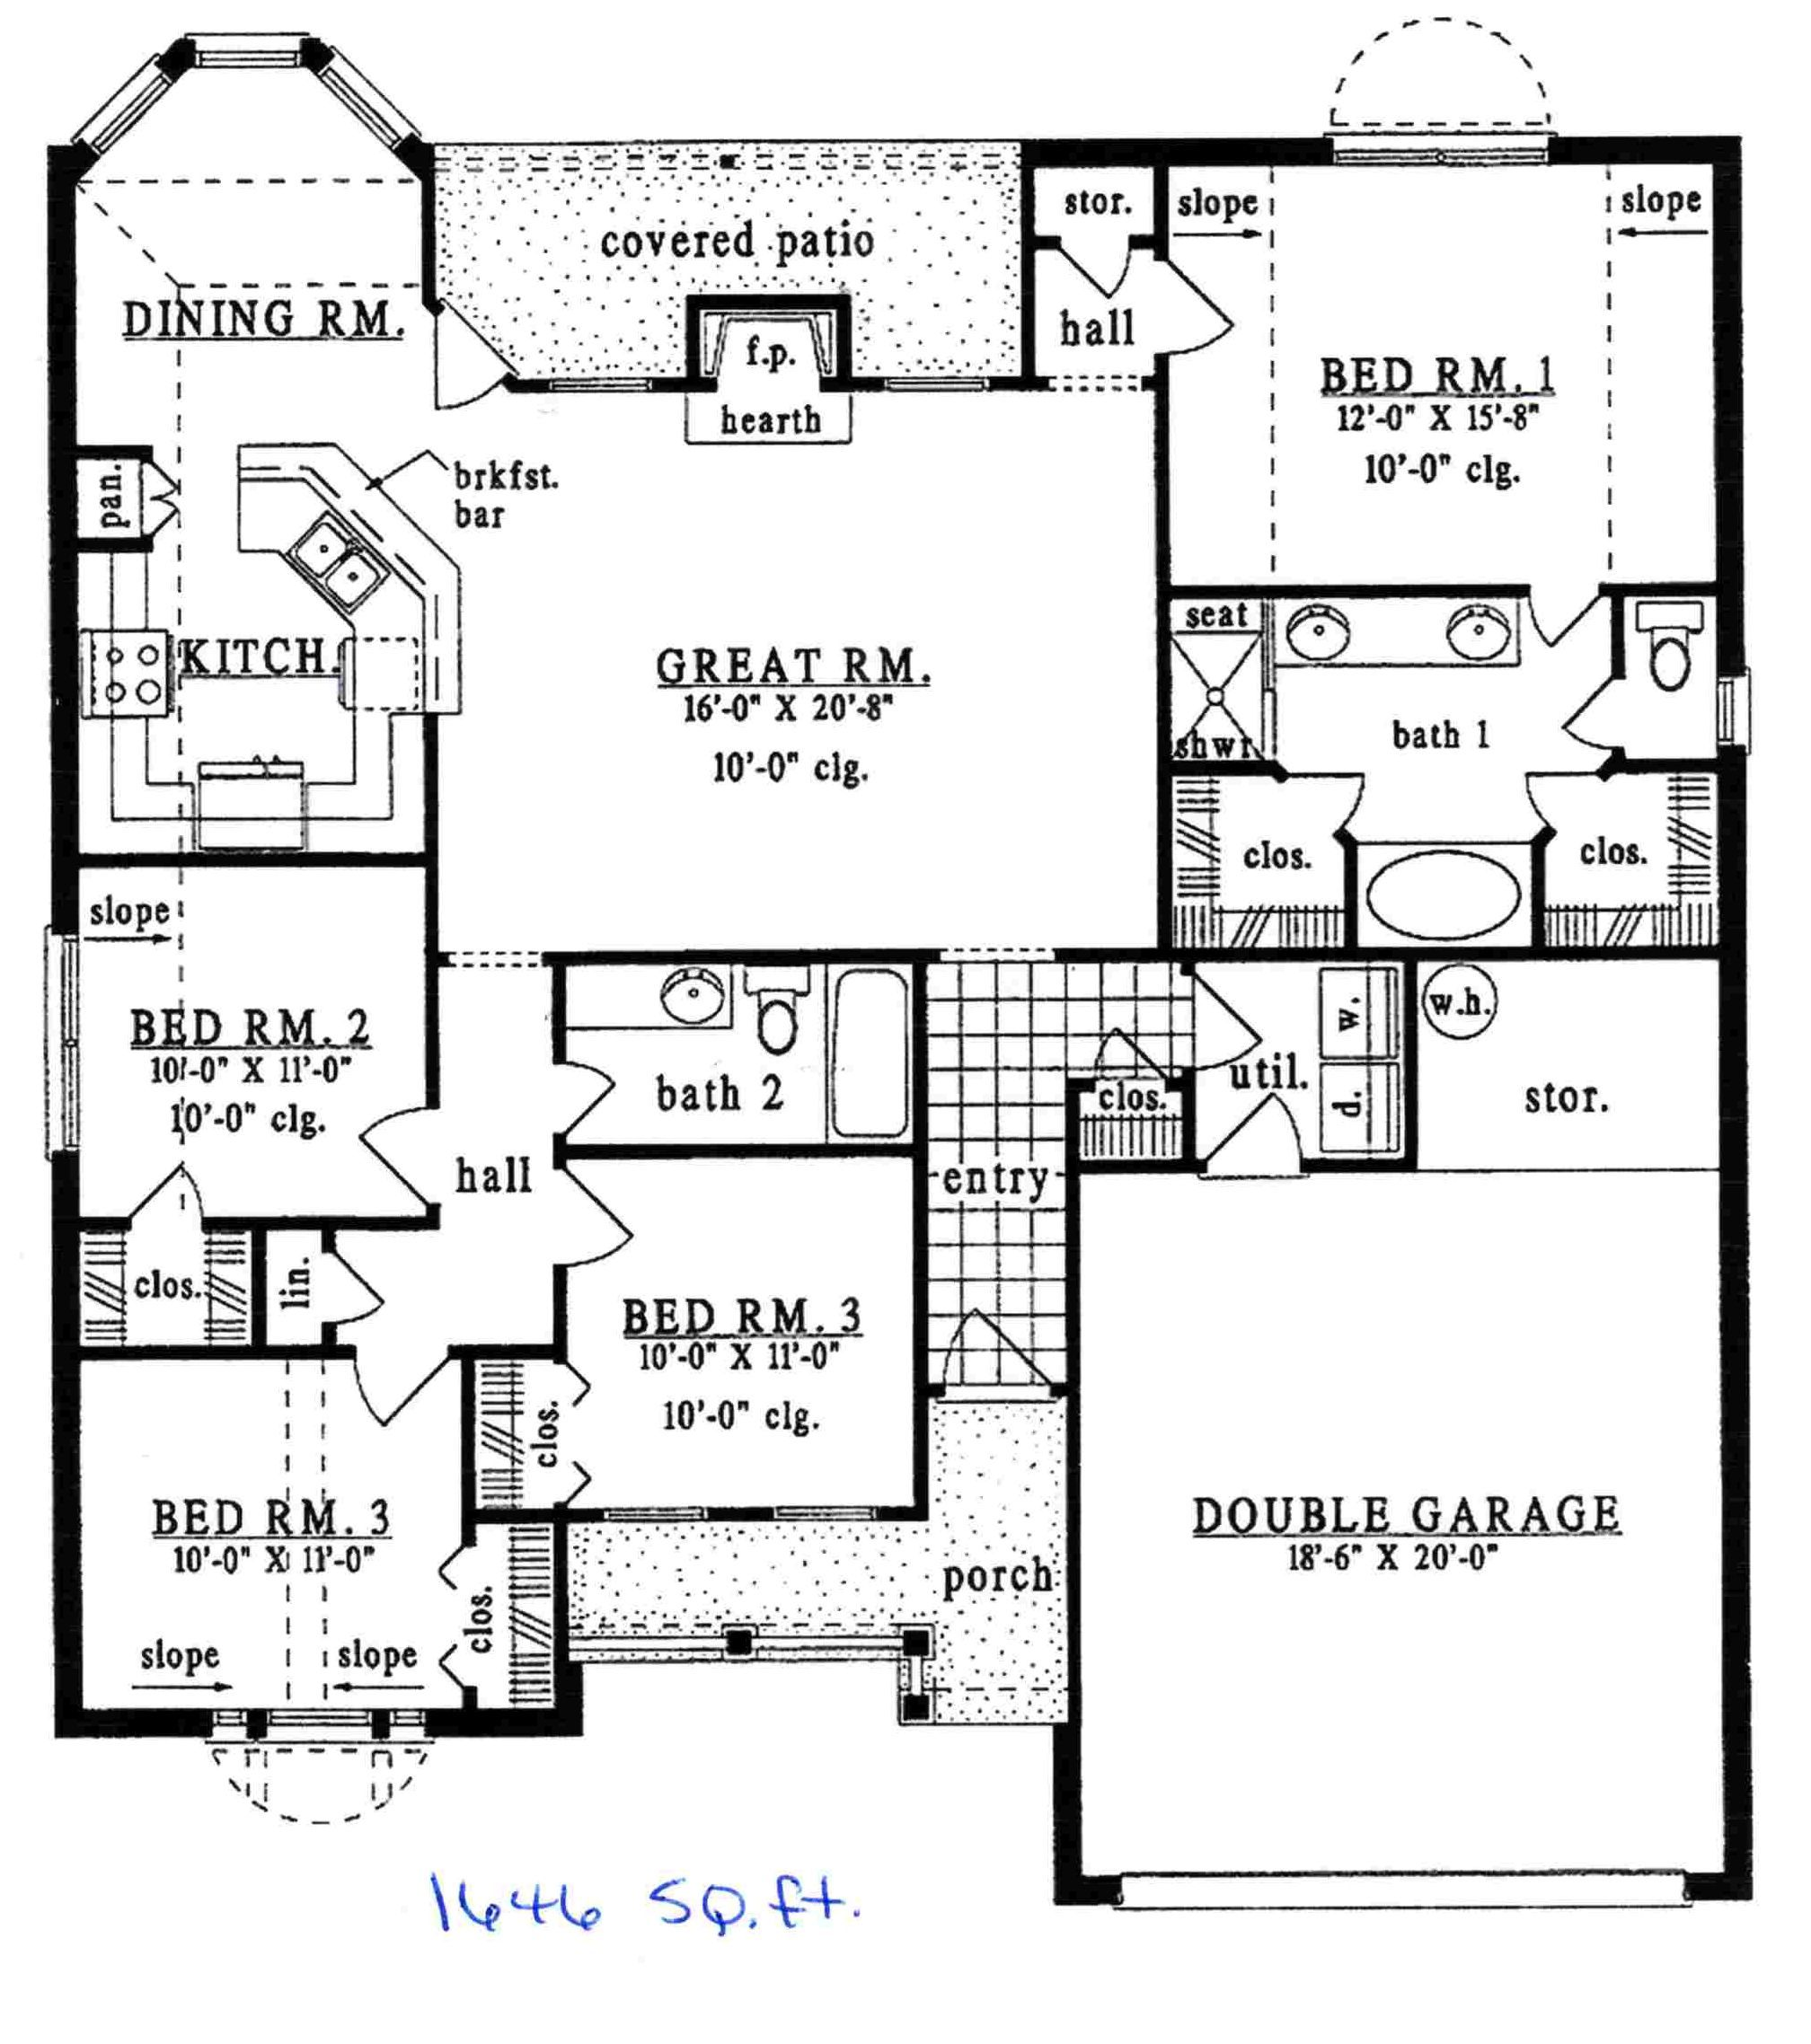 Ranch Style House Plan 4 Beds 2 Baths 1646 Sq Ft Plan 42 529